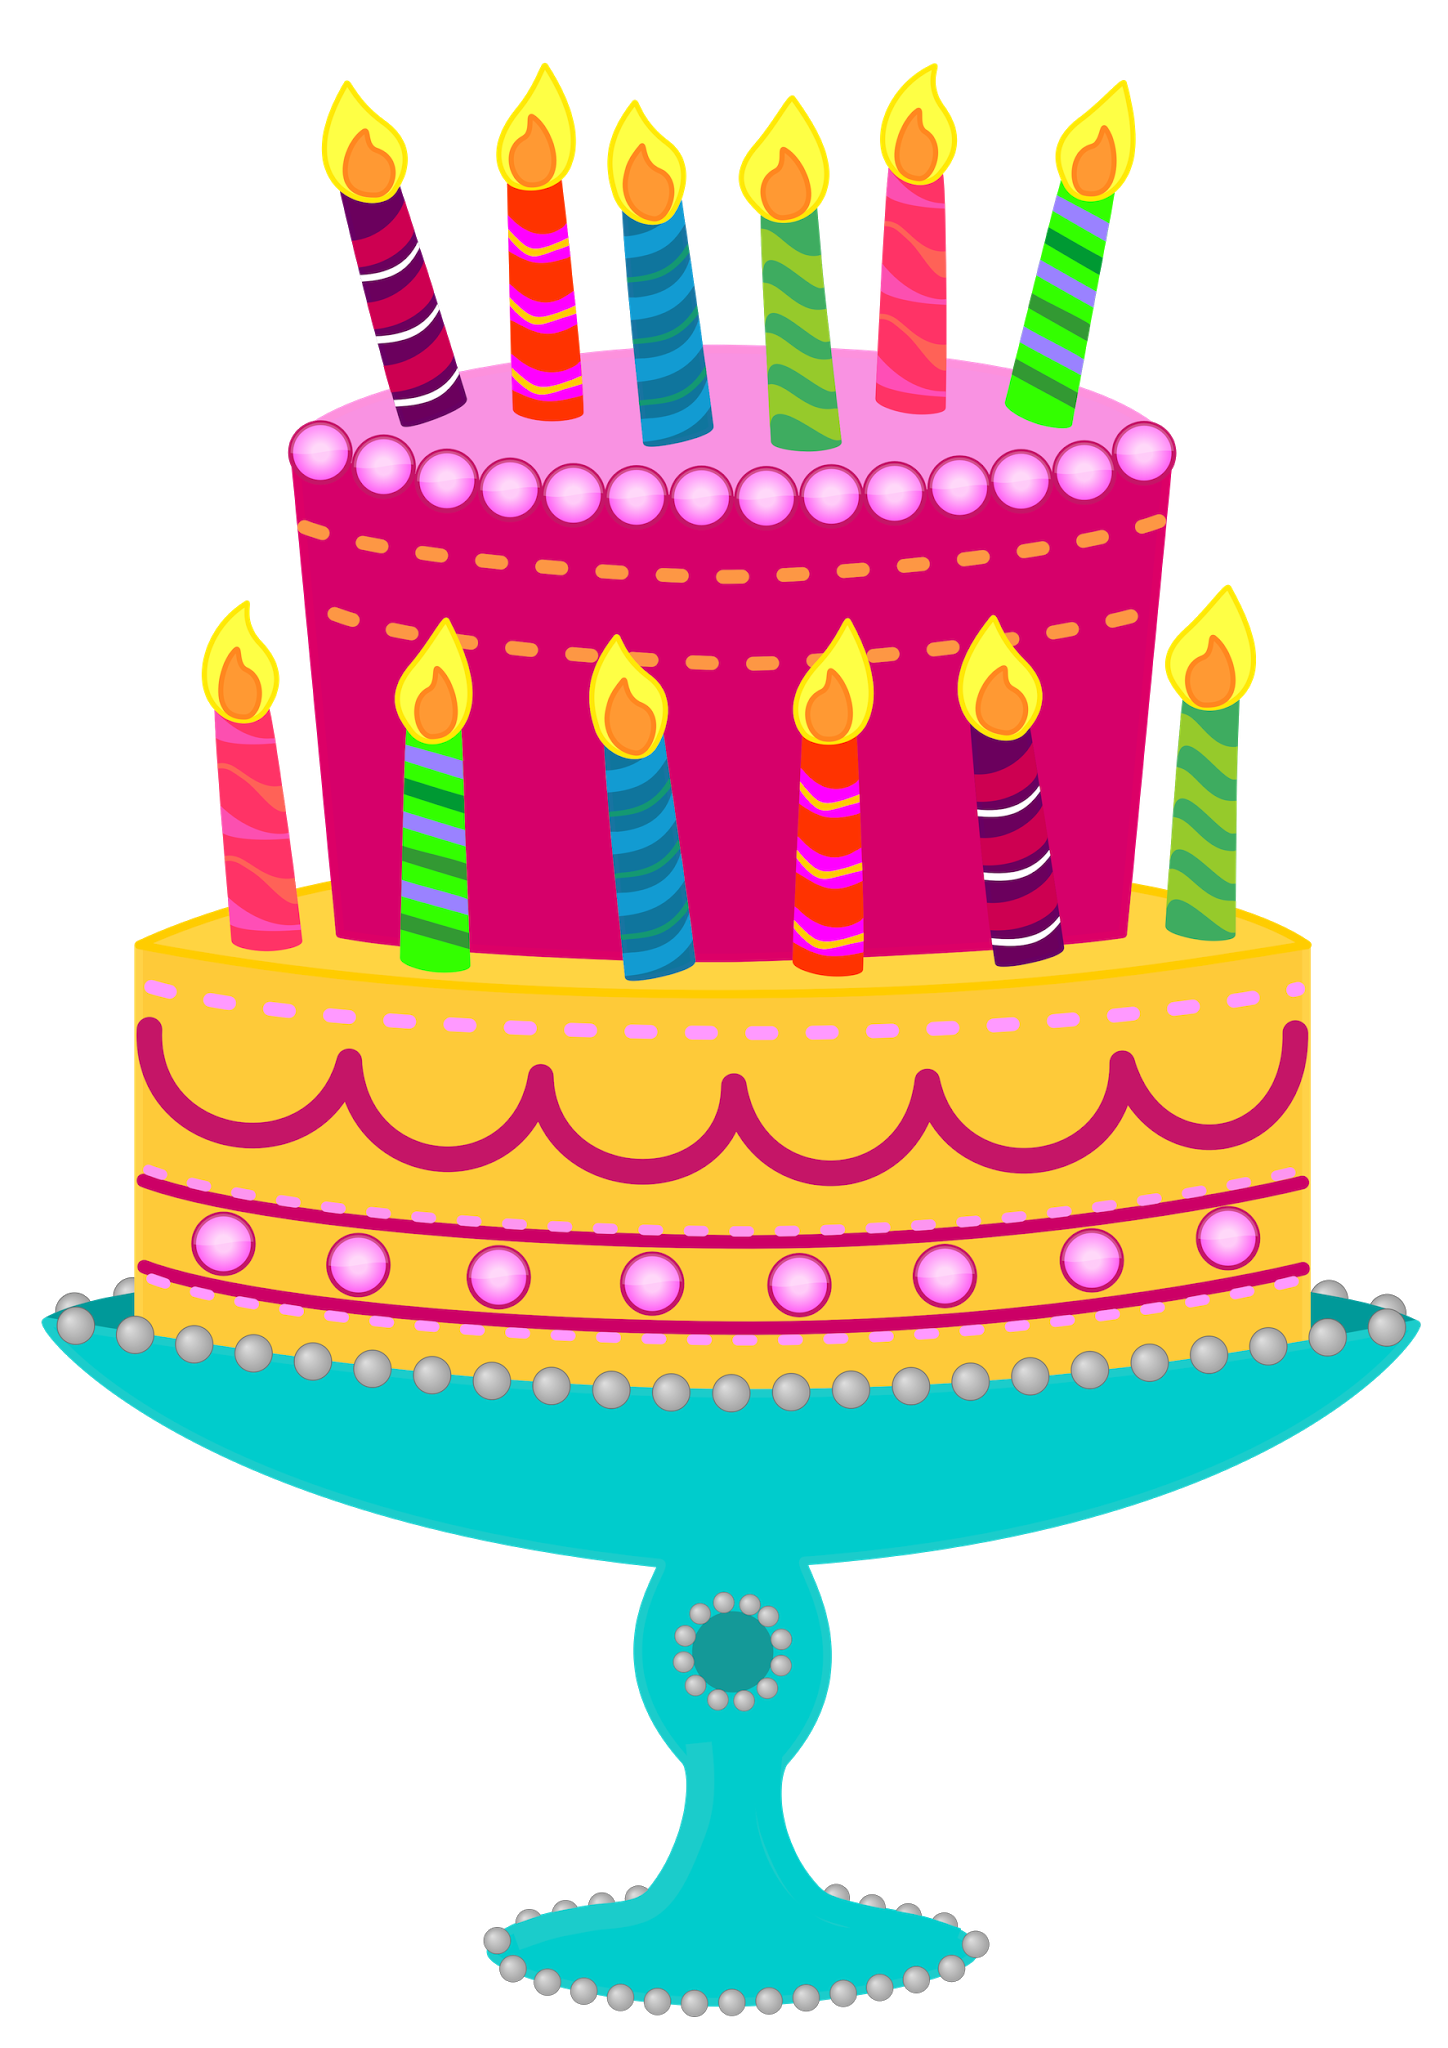 Cake clipart. Free images cliparts co